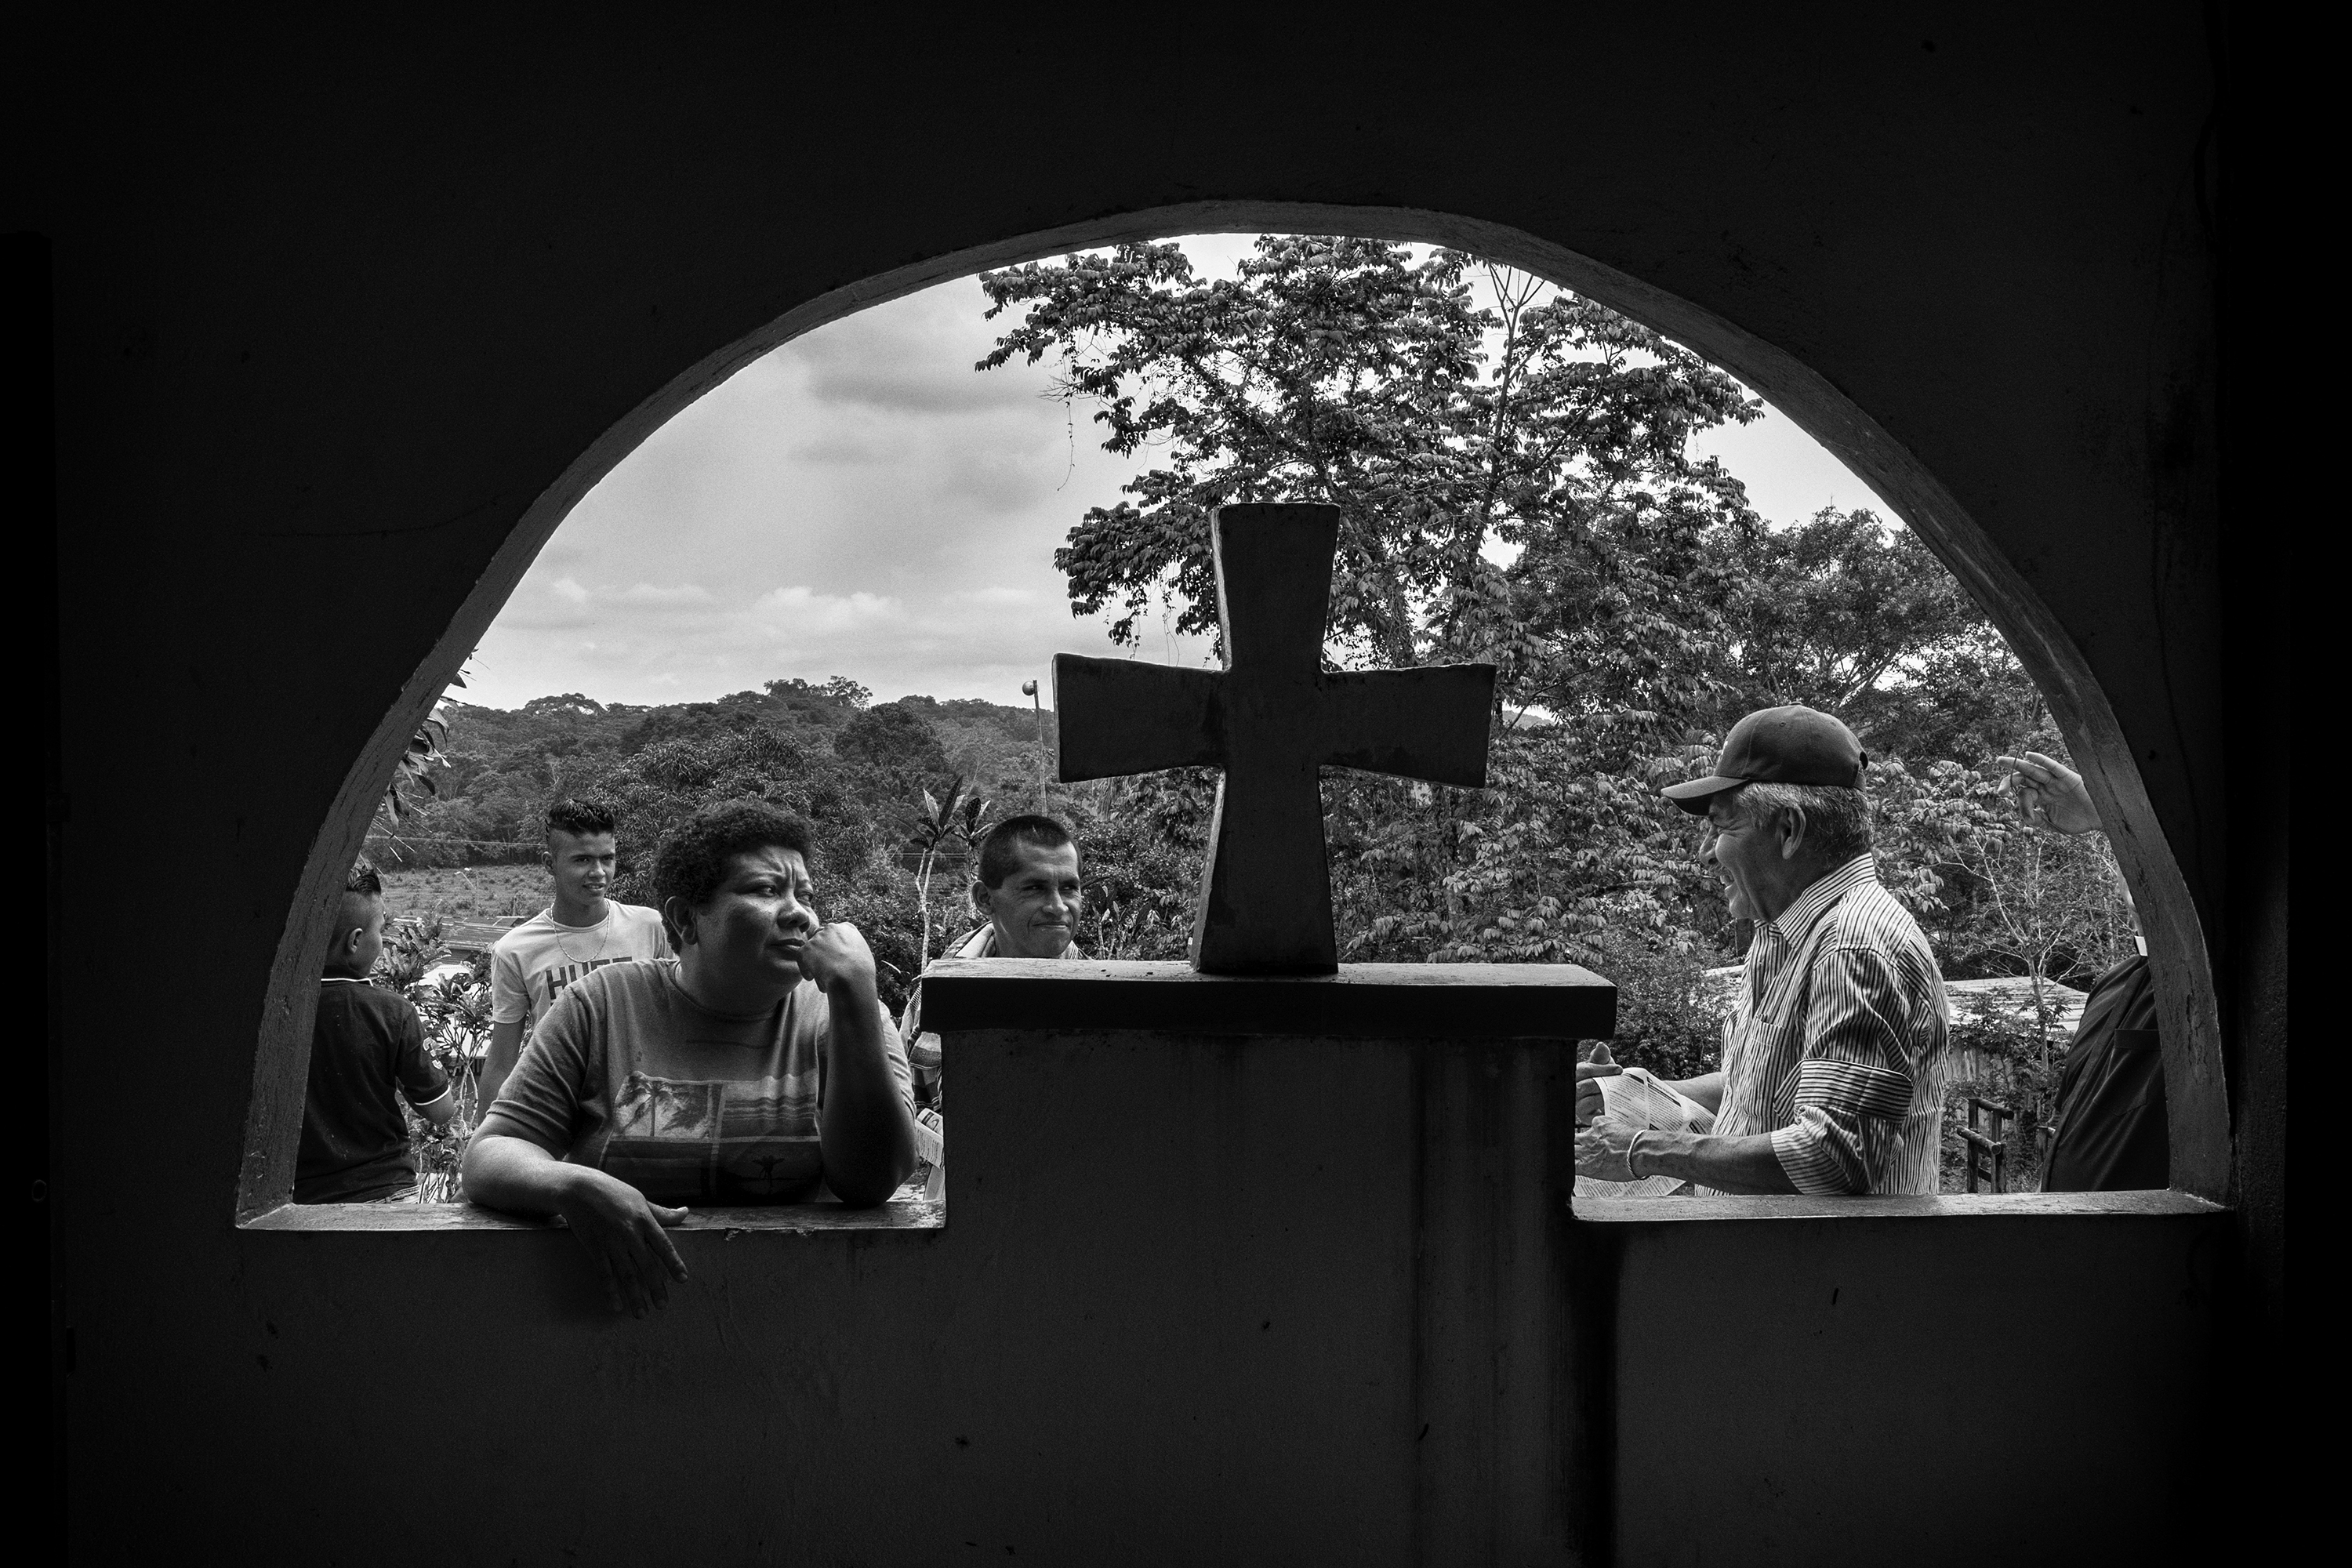 A group of civilians wait for a mass in the village of Puerto Camelias, Caqueta, Colombia, which is one of the villages under FARC guerrilla control,  Caqueta region, March, 2016.